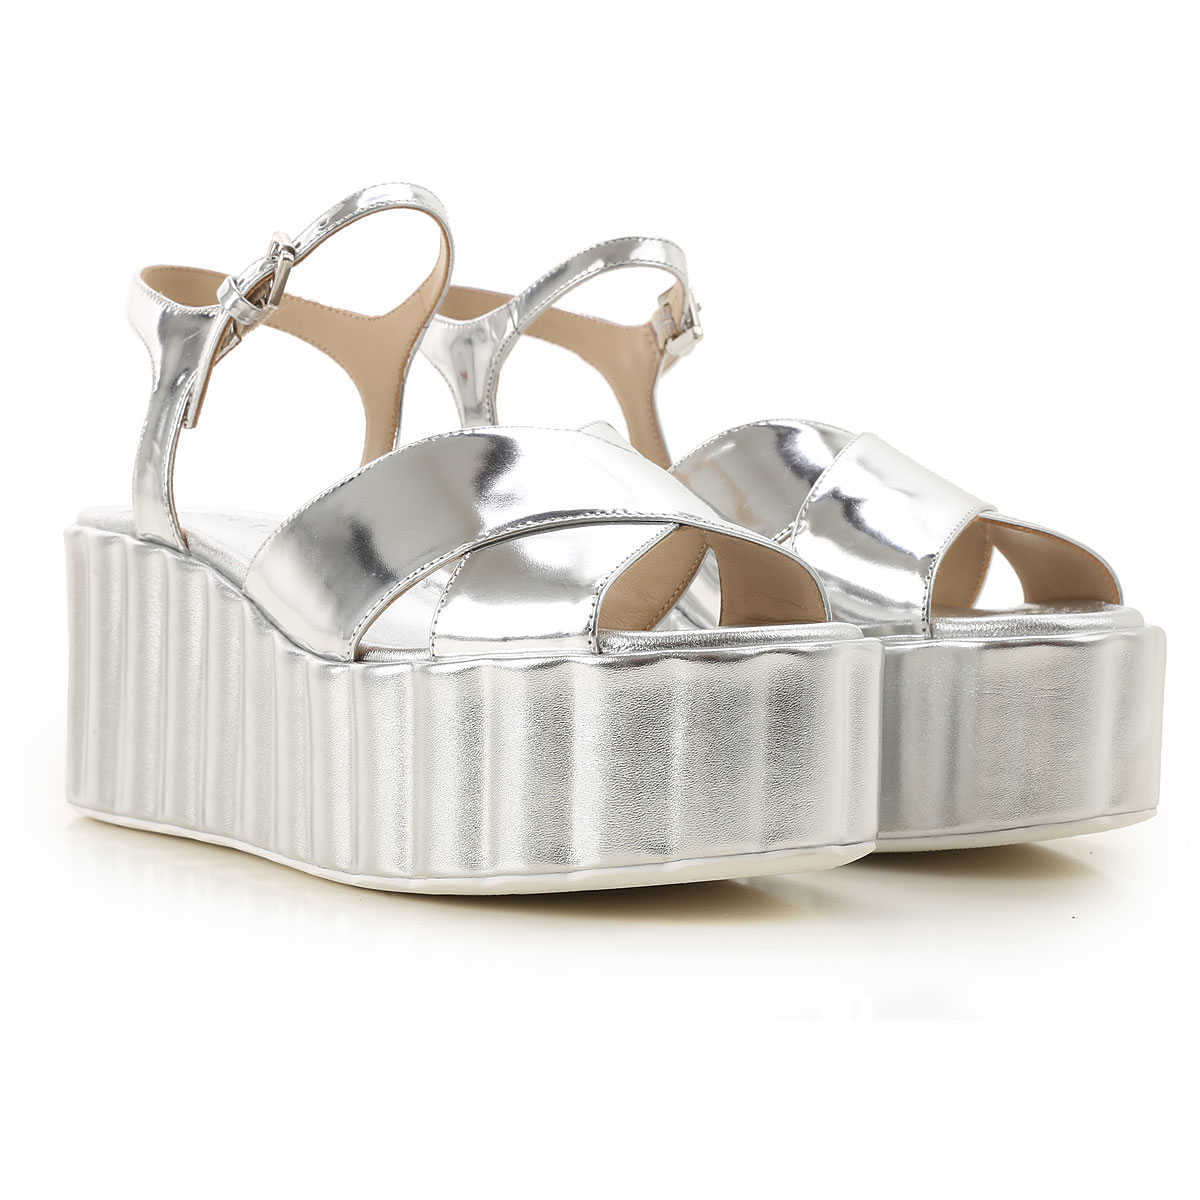 Strategia Wedges for Women On Sale Silver DK - GOOFASH - Womens HOUSE SHOES